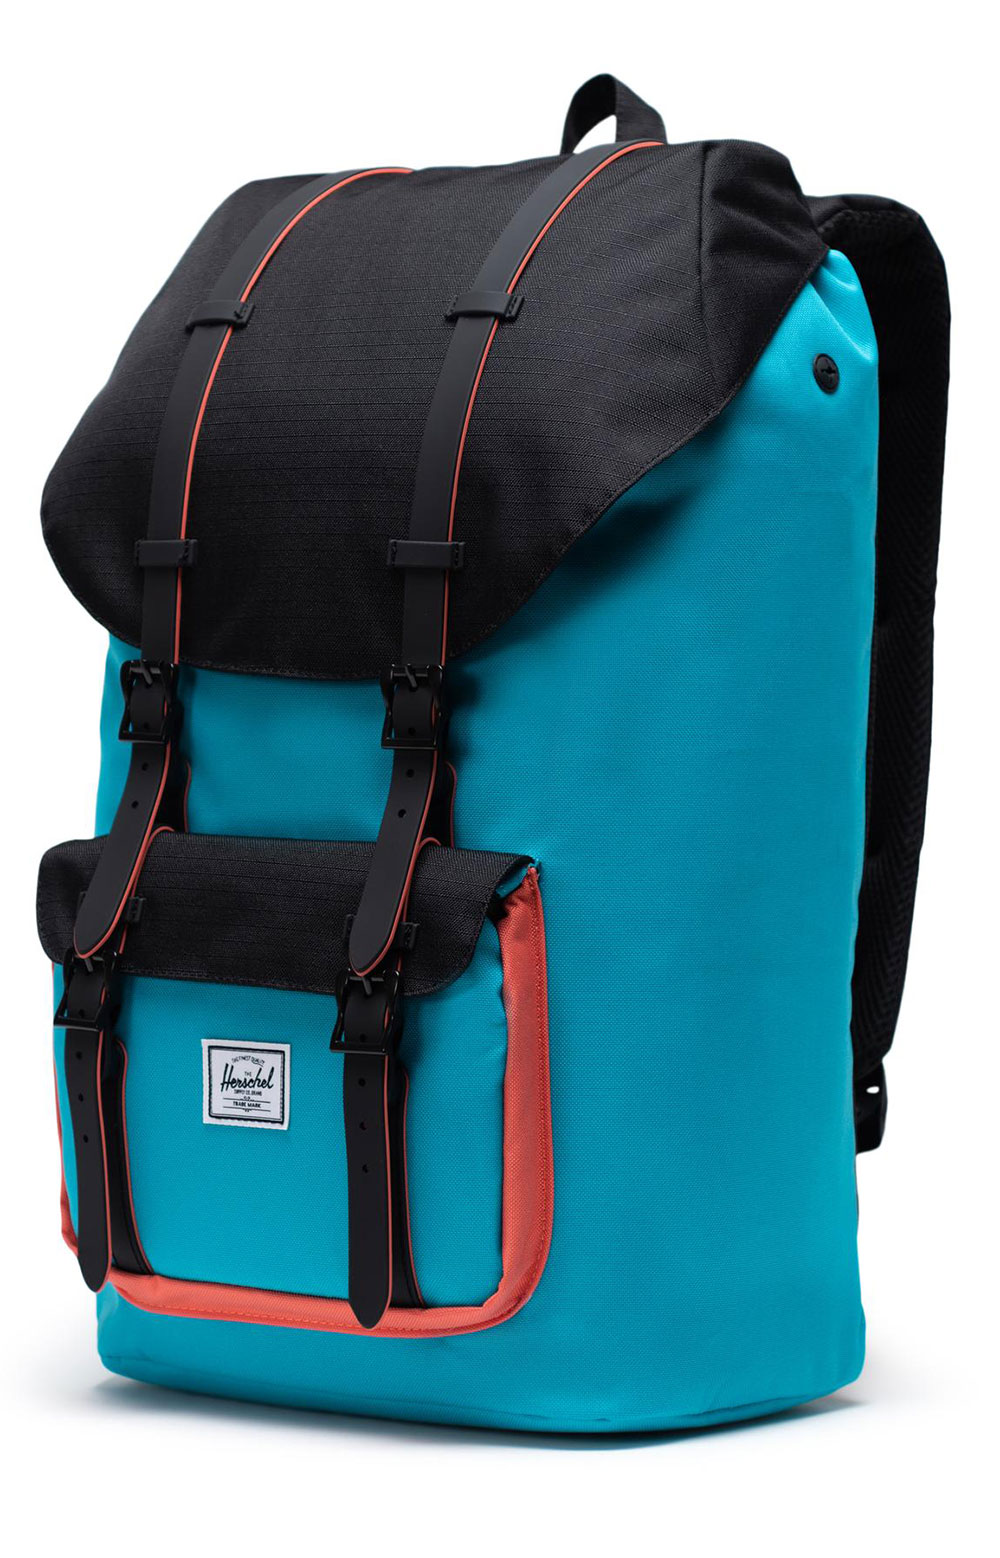 Little America Backpack - Blue Bird/Black/Emberglow 3